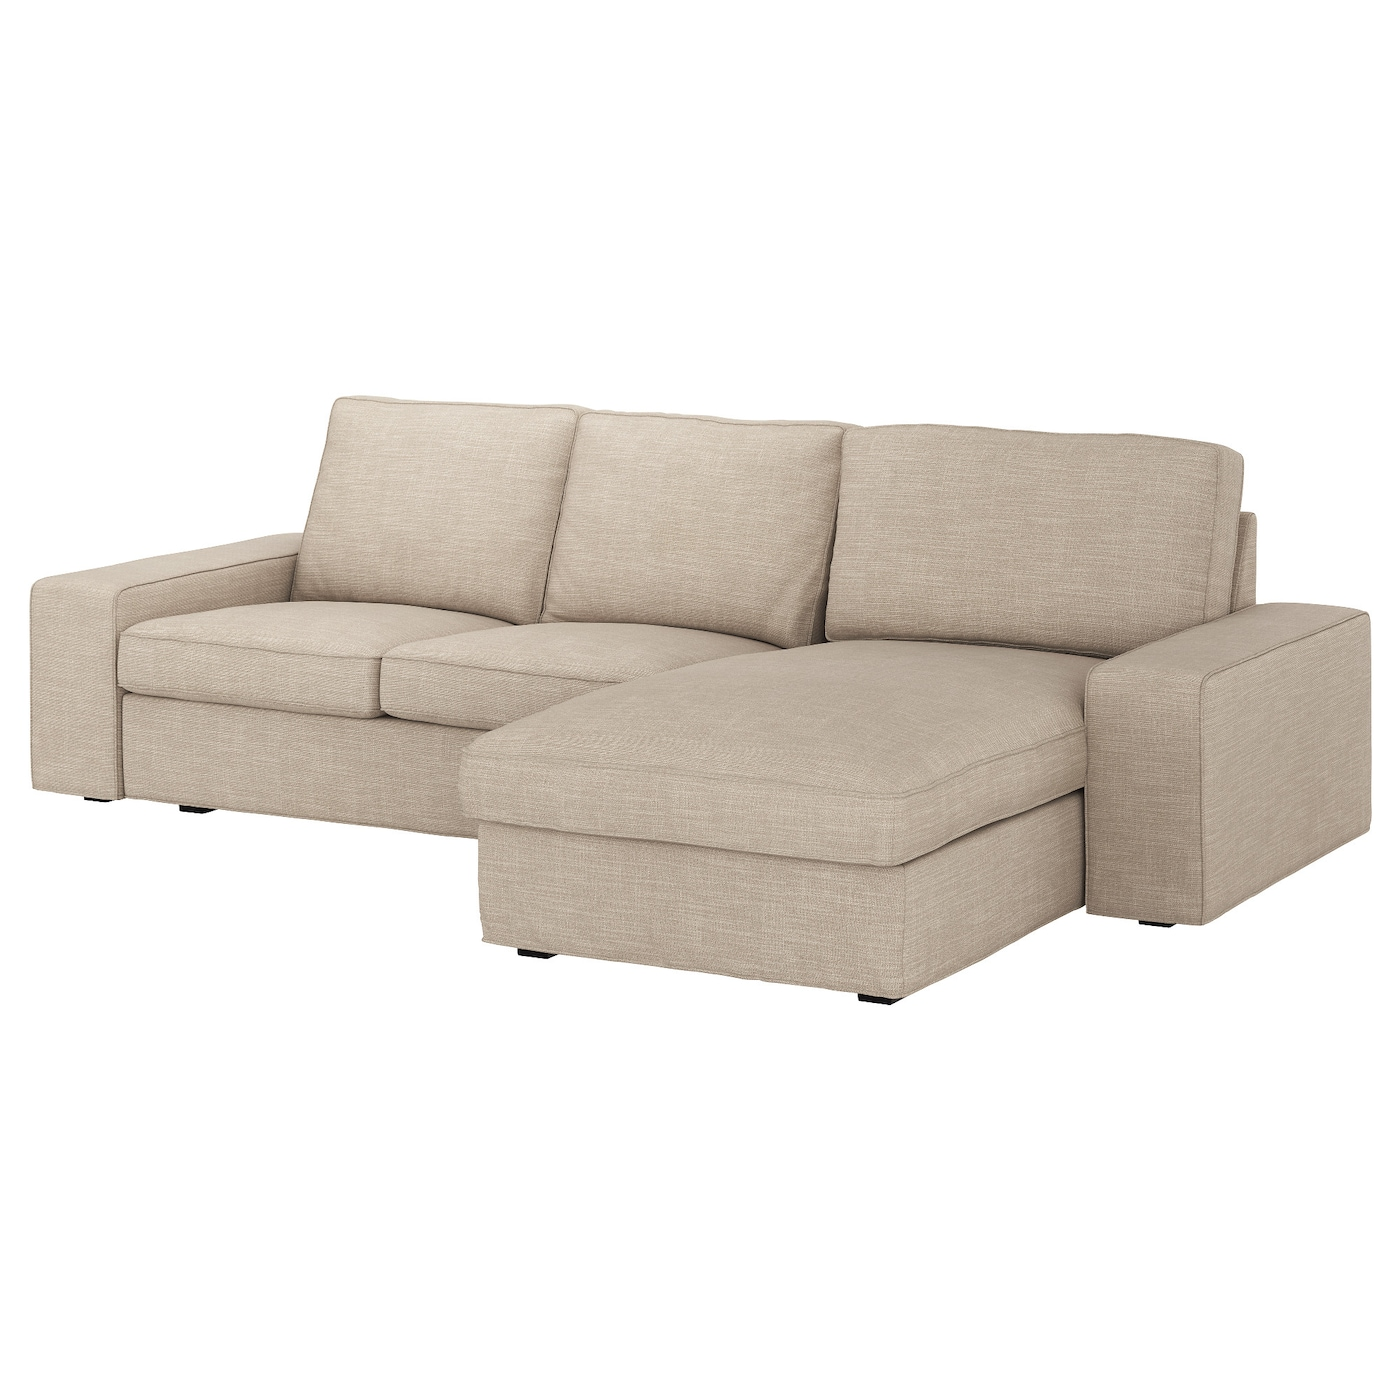 Kivik 3 seat sofa with chaise longue hillared beige ikea for 3 seater chaise sofa